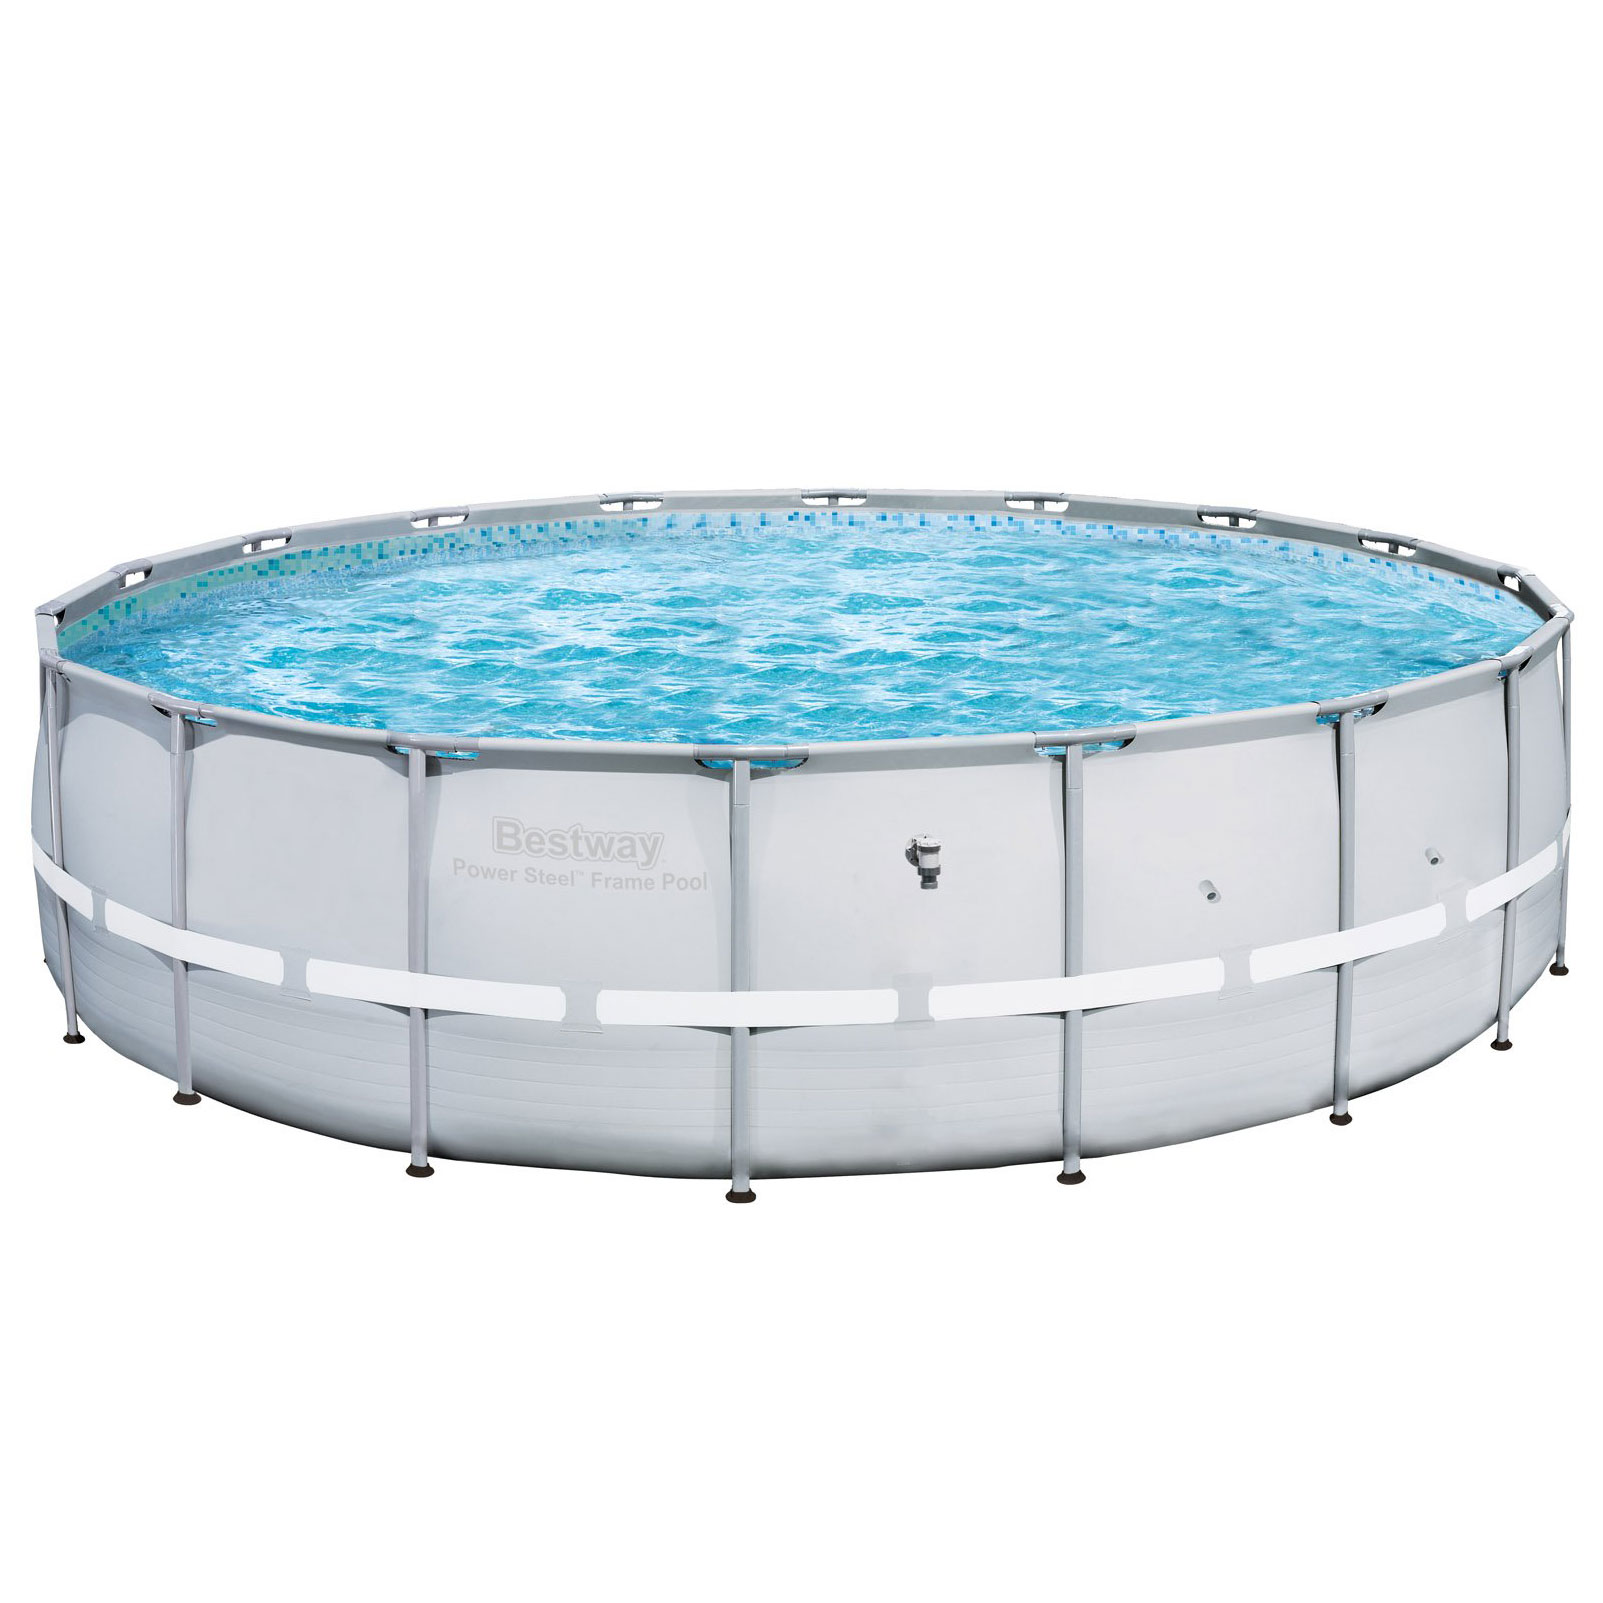 Bestway 18 39 X 52 Power Steel Pro Frame Above Ground Swimming Pool Pool Only